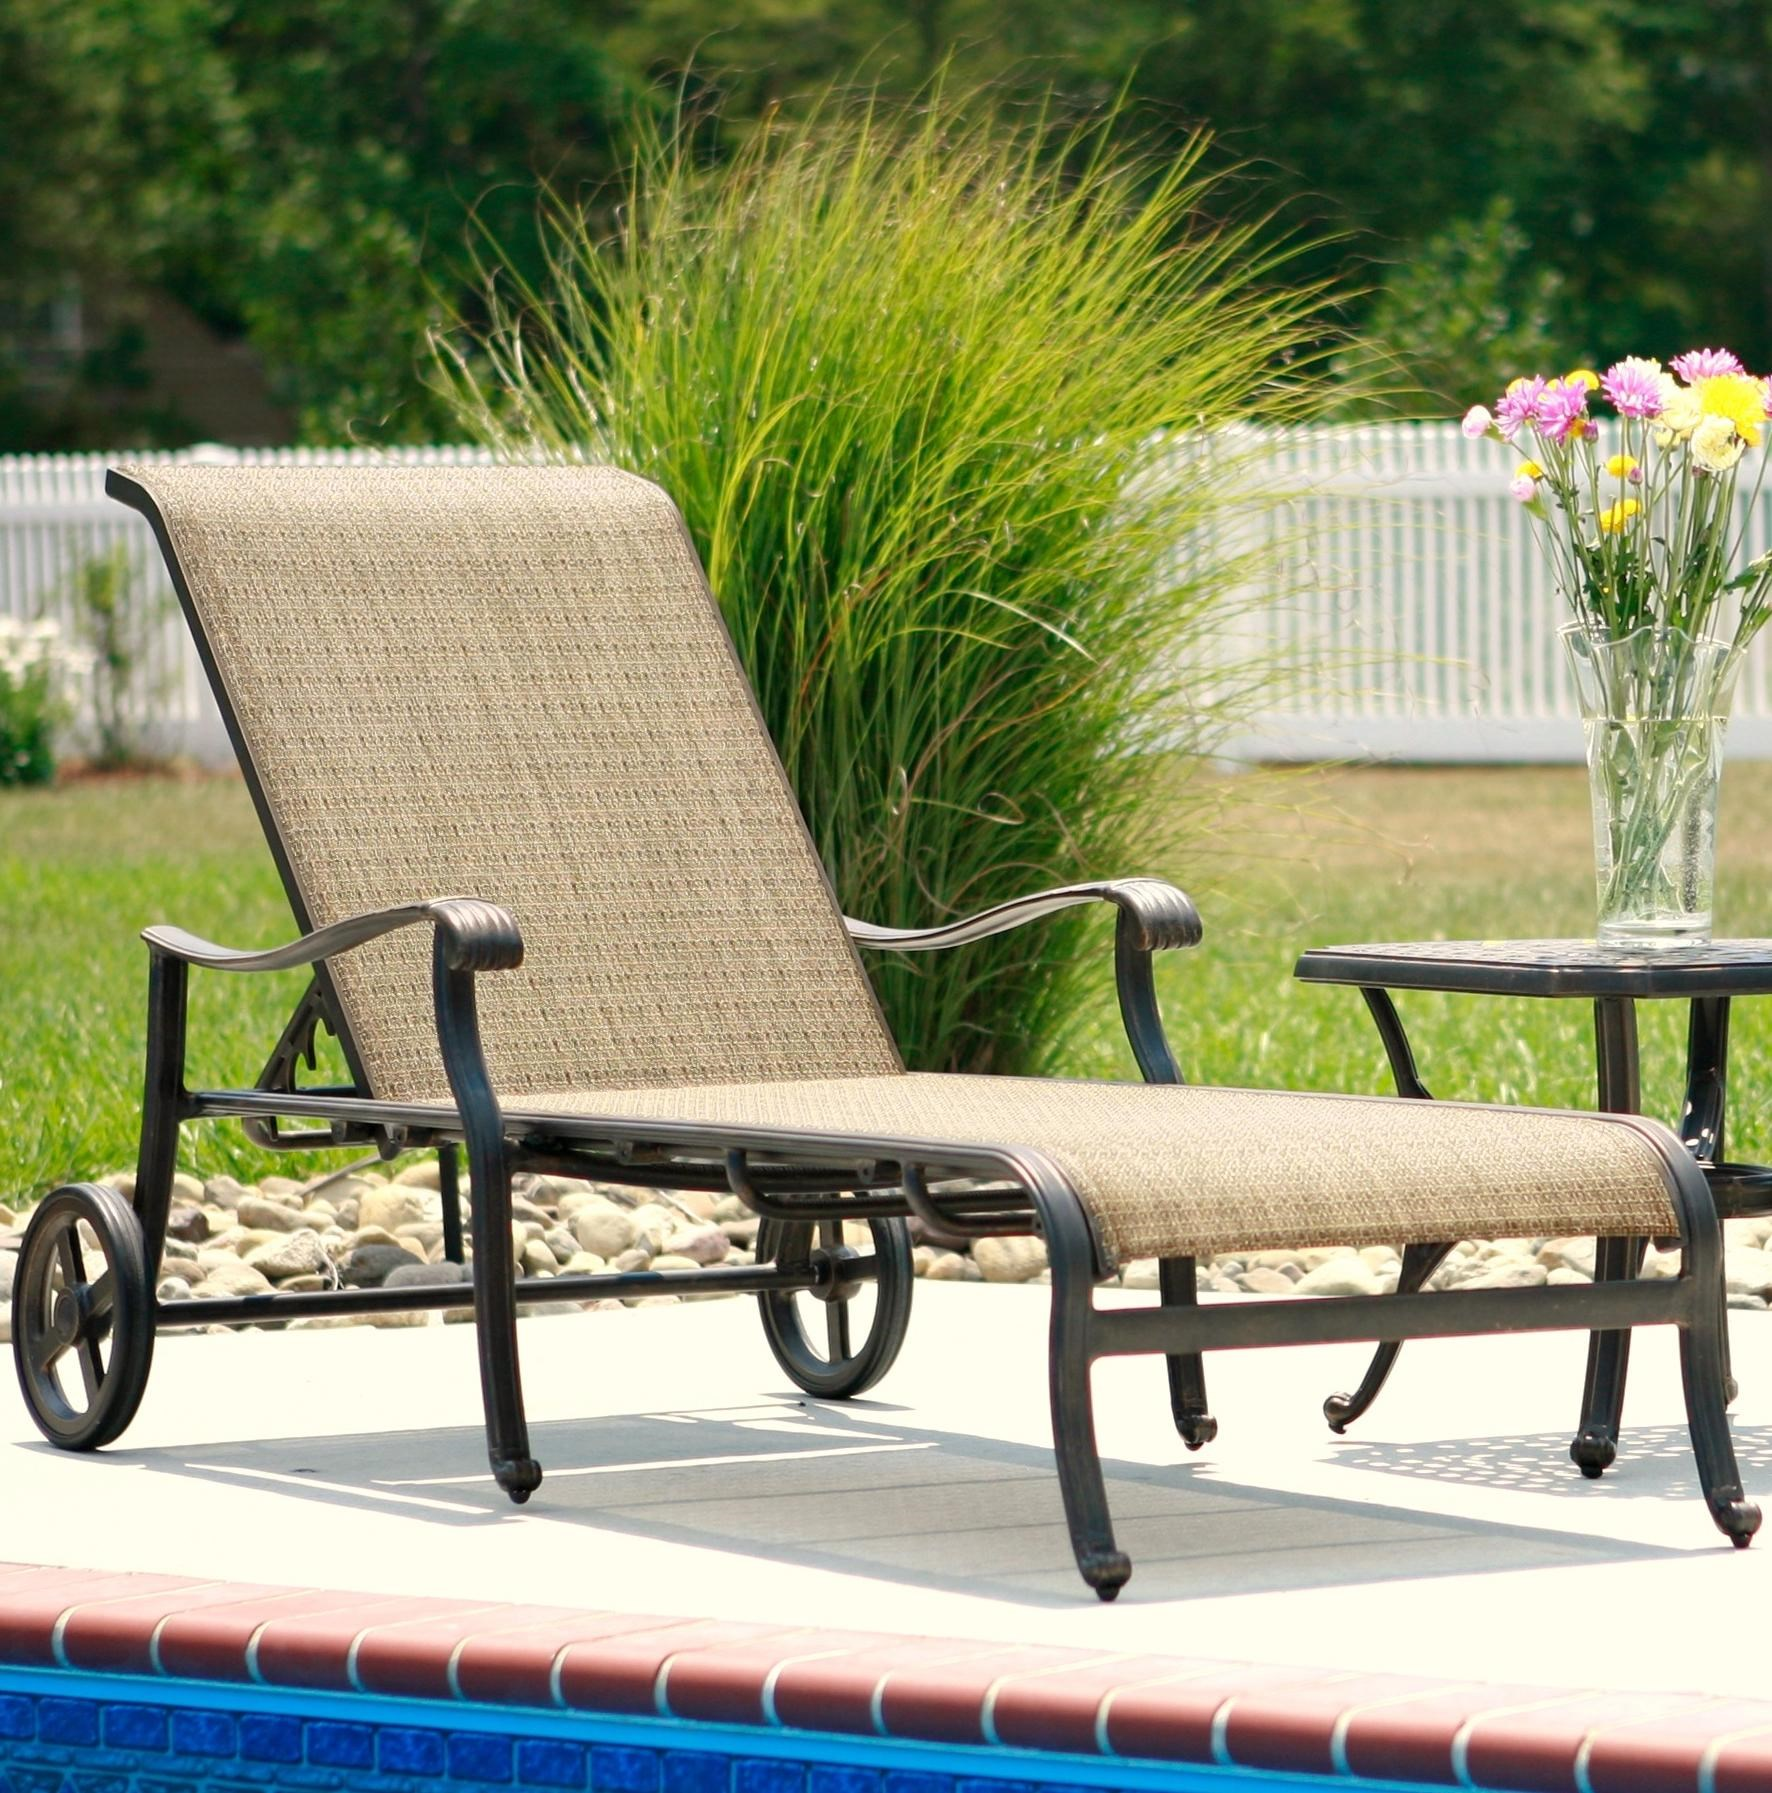 Agio Ashmost Outdoor Chaise Lounge with Wheels and Woven Body Set